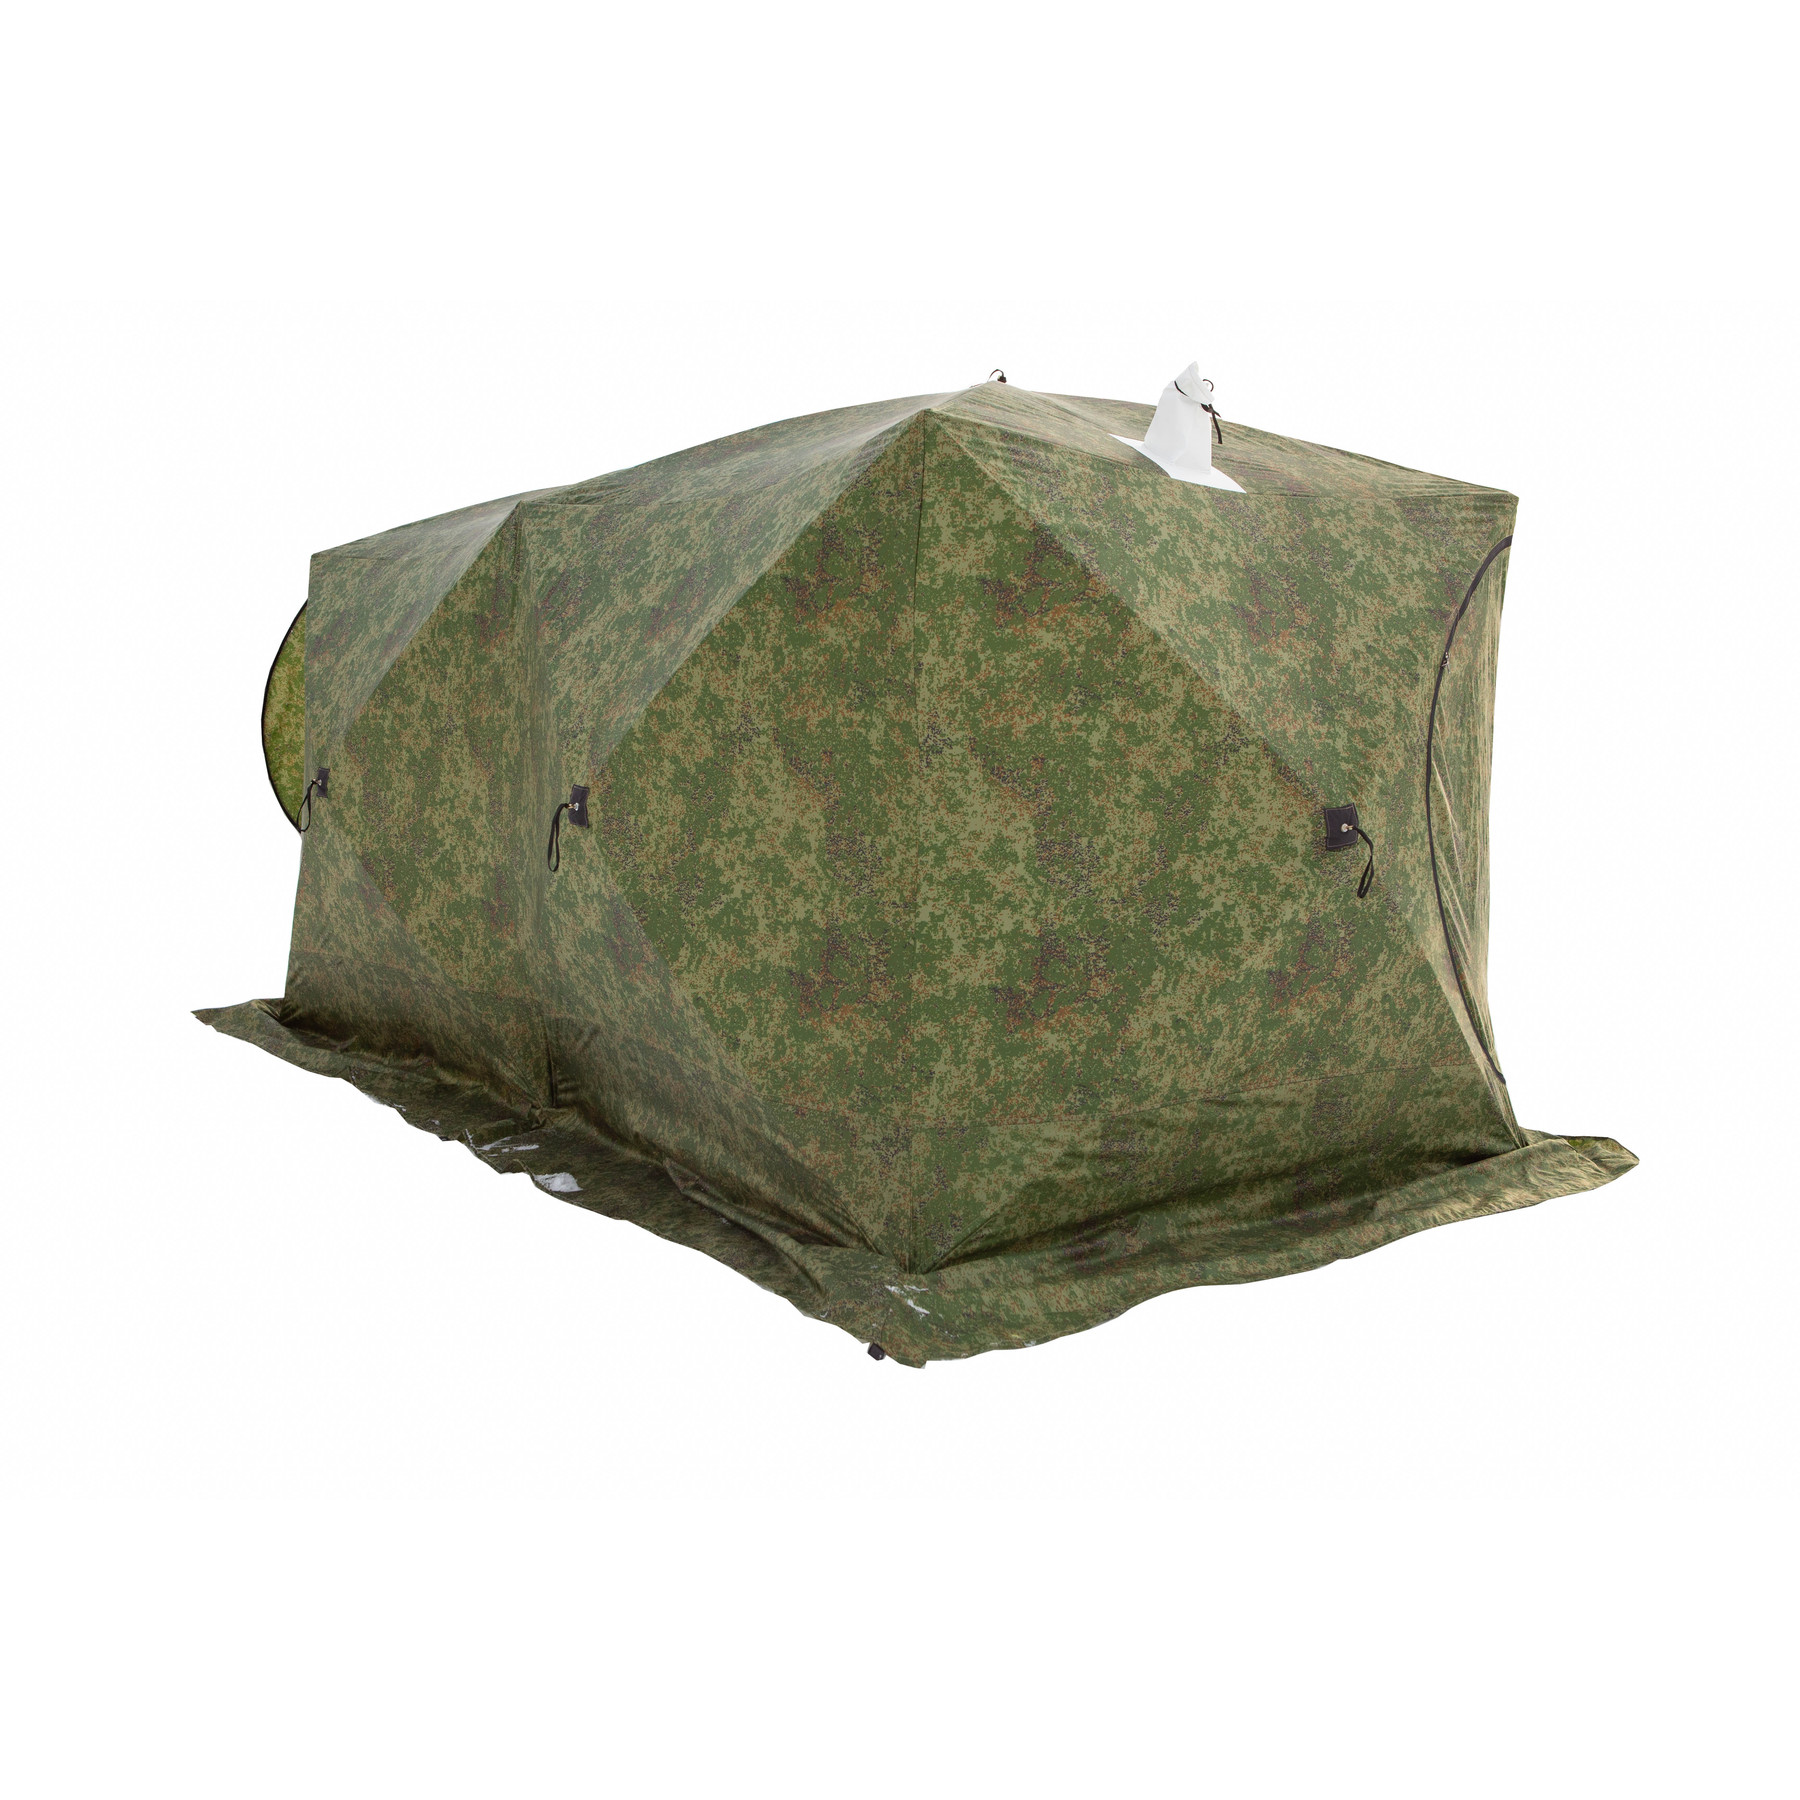 Tent Stek куб-3 Double (three Layer), Goods For Fishing, Tourism, Goods For Winter Fishing